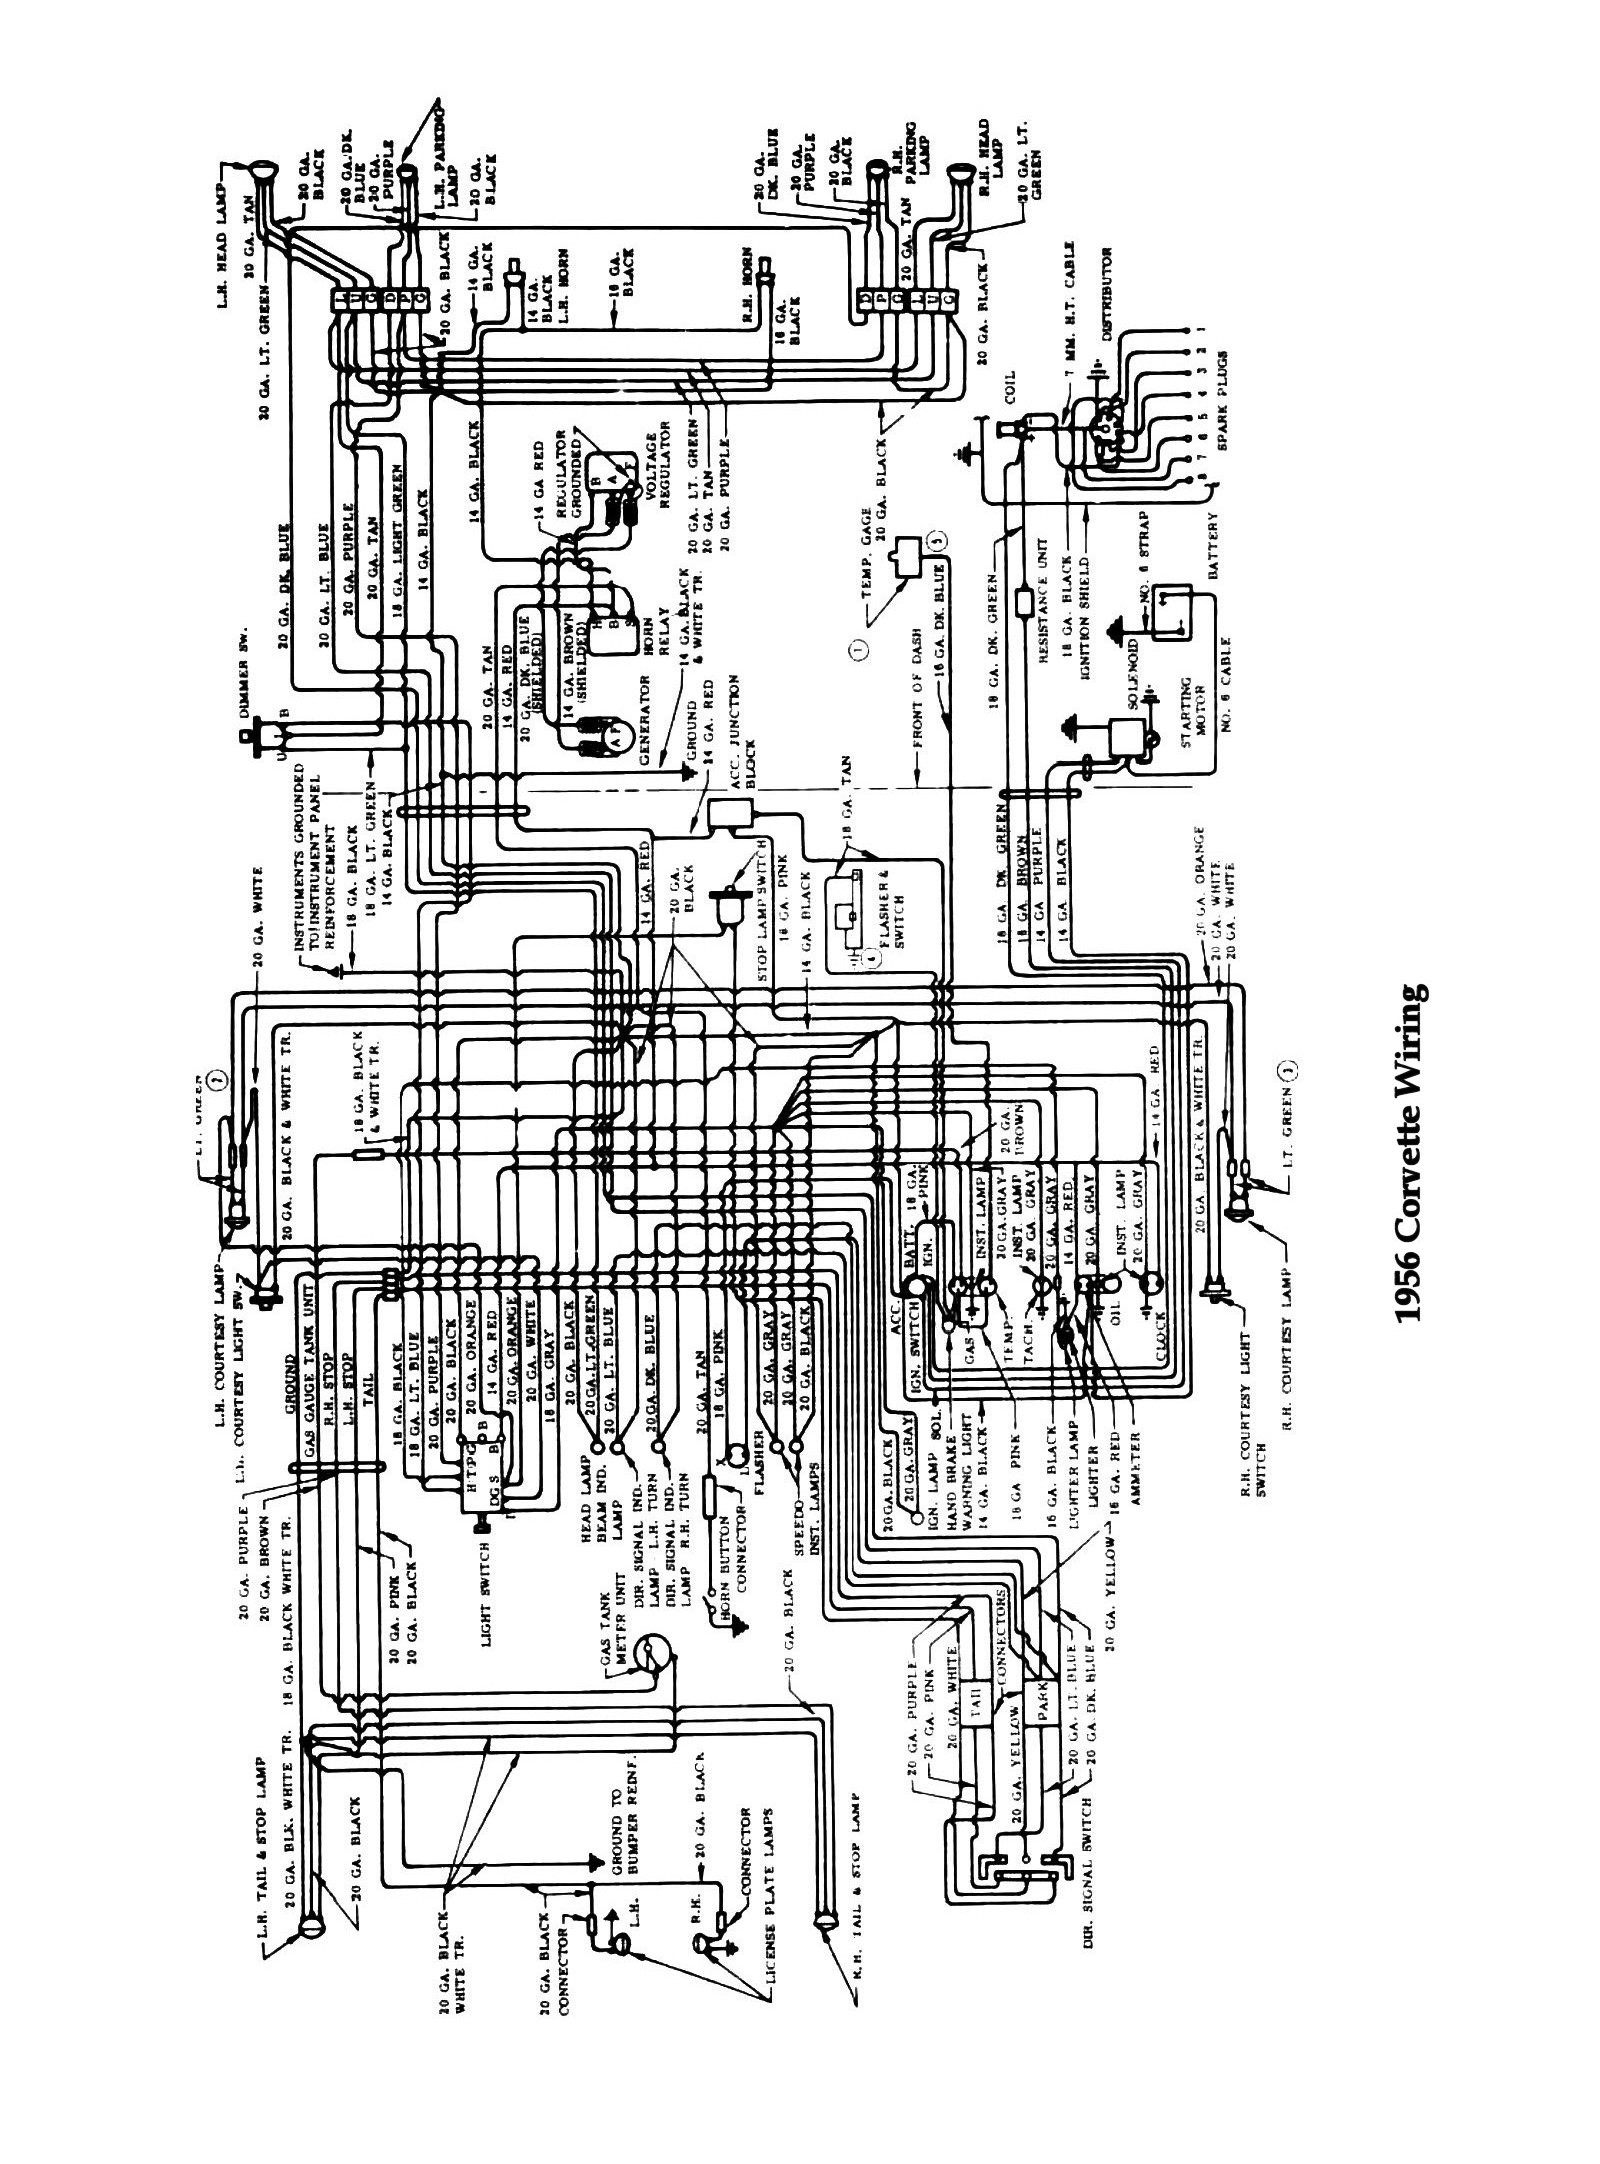 hight resolution of 1960 corvette wiring diagram wiring diagrams schema 1965 corvette wiring diagram 1960 corvette wiring diagram